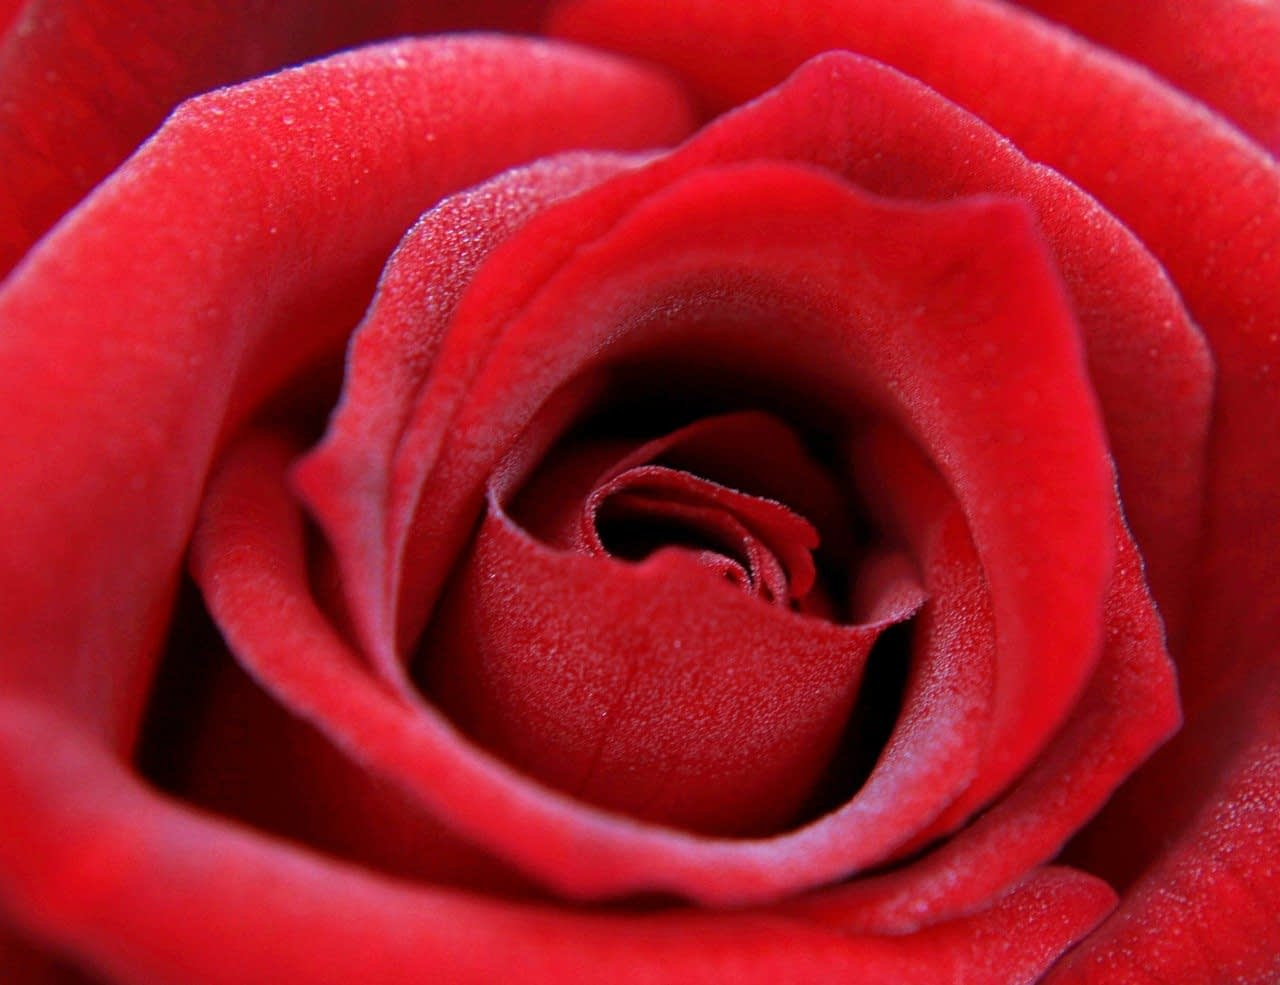 red rose, rose, feeling